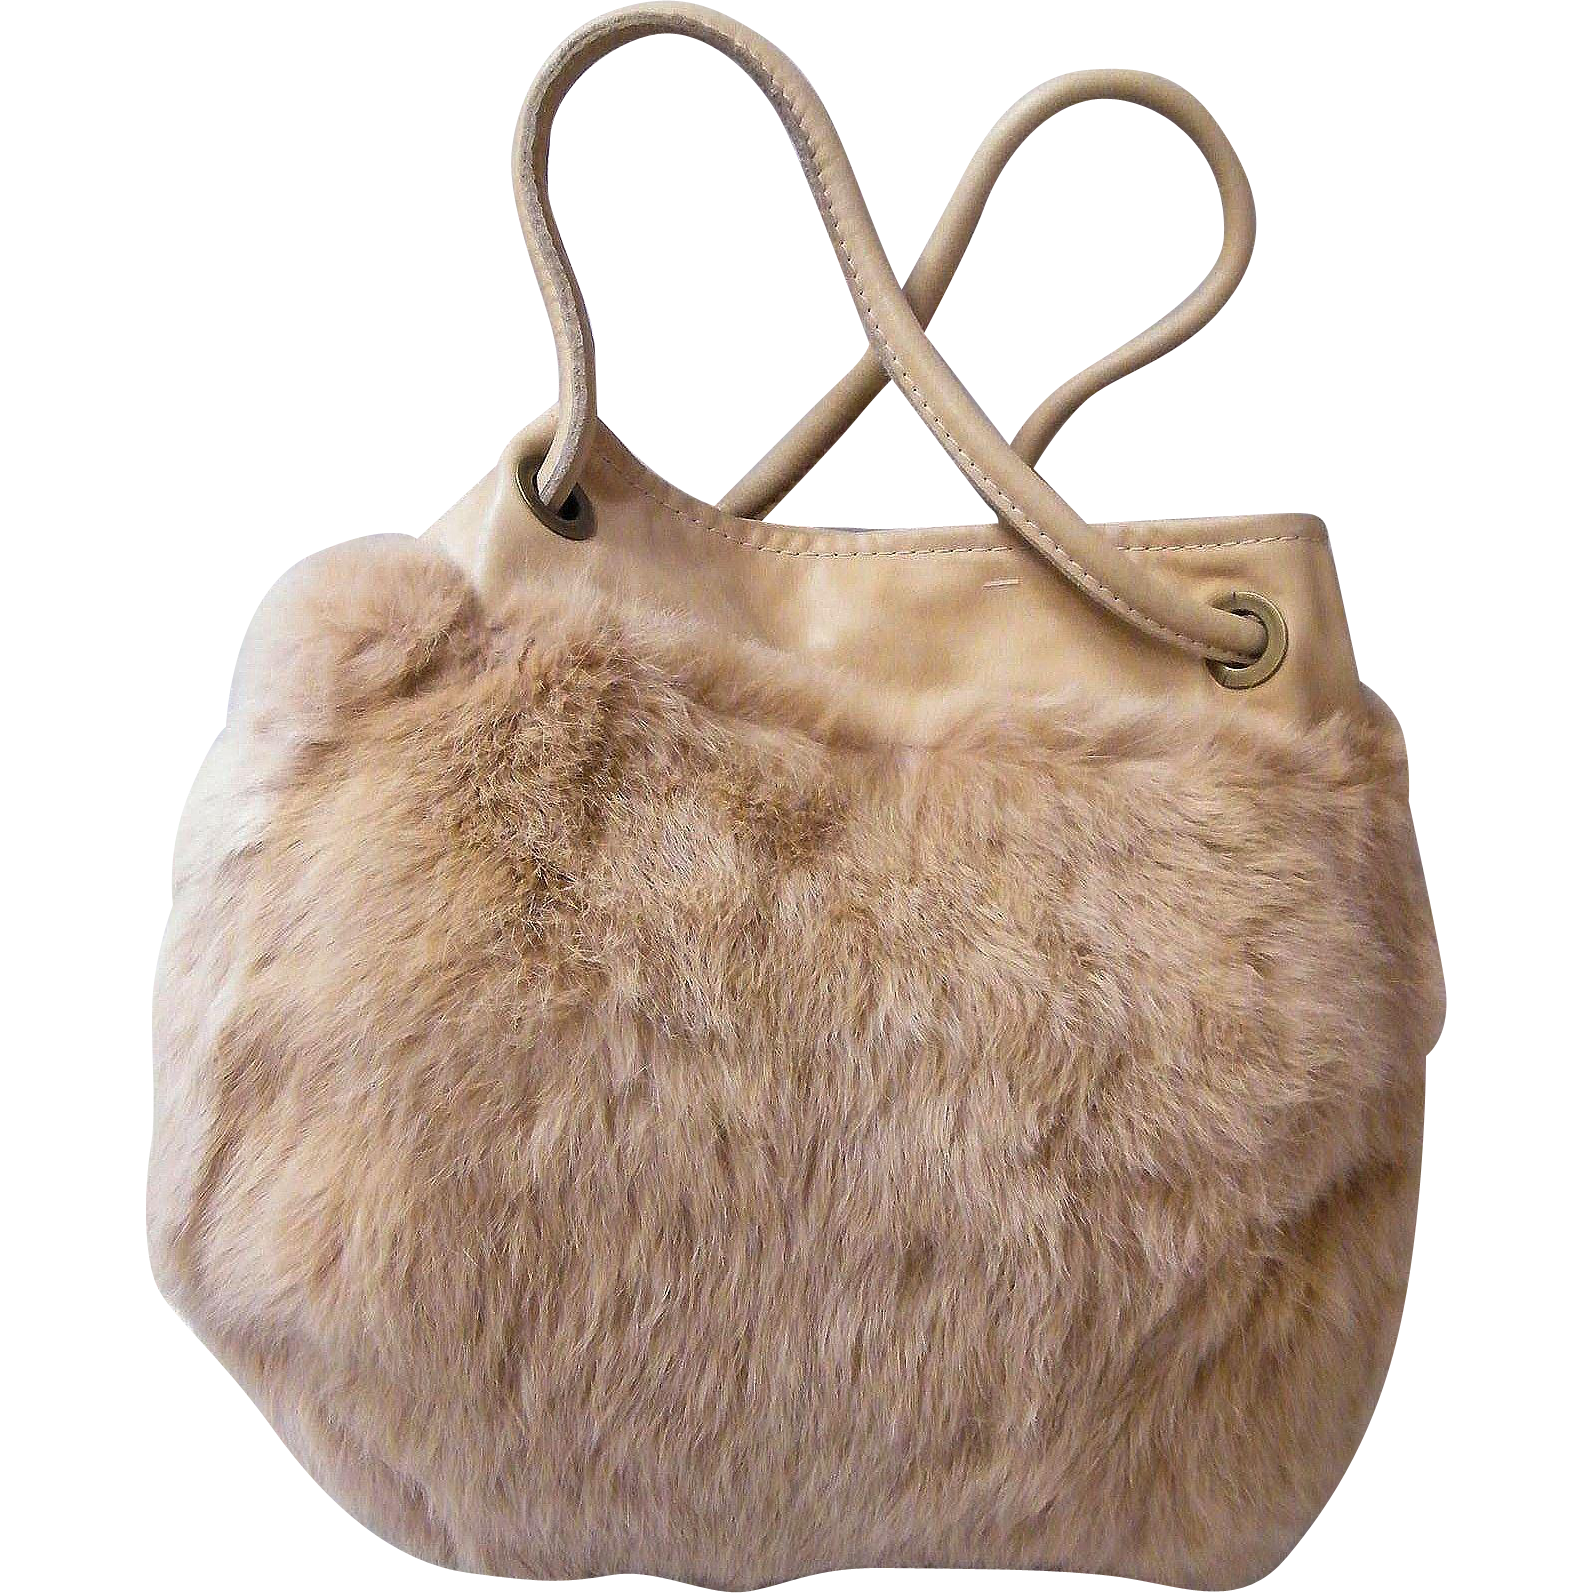 Round Fur Beige Drawstring Handbag With Beige Leather  Trim..Laura San Jurjo For Julia Manantiales